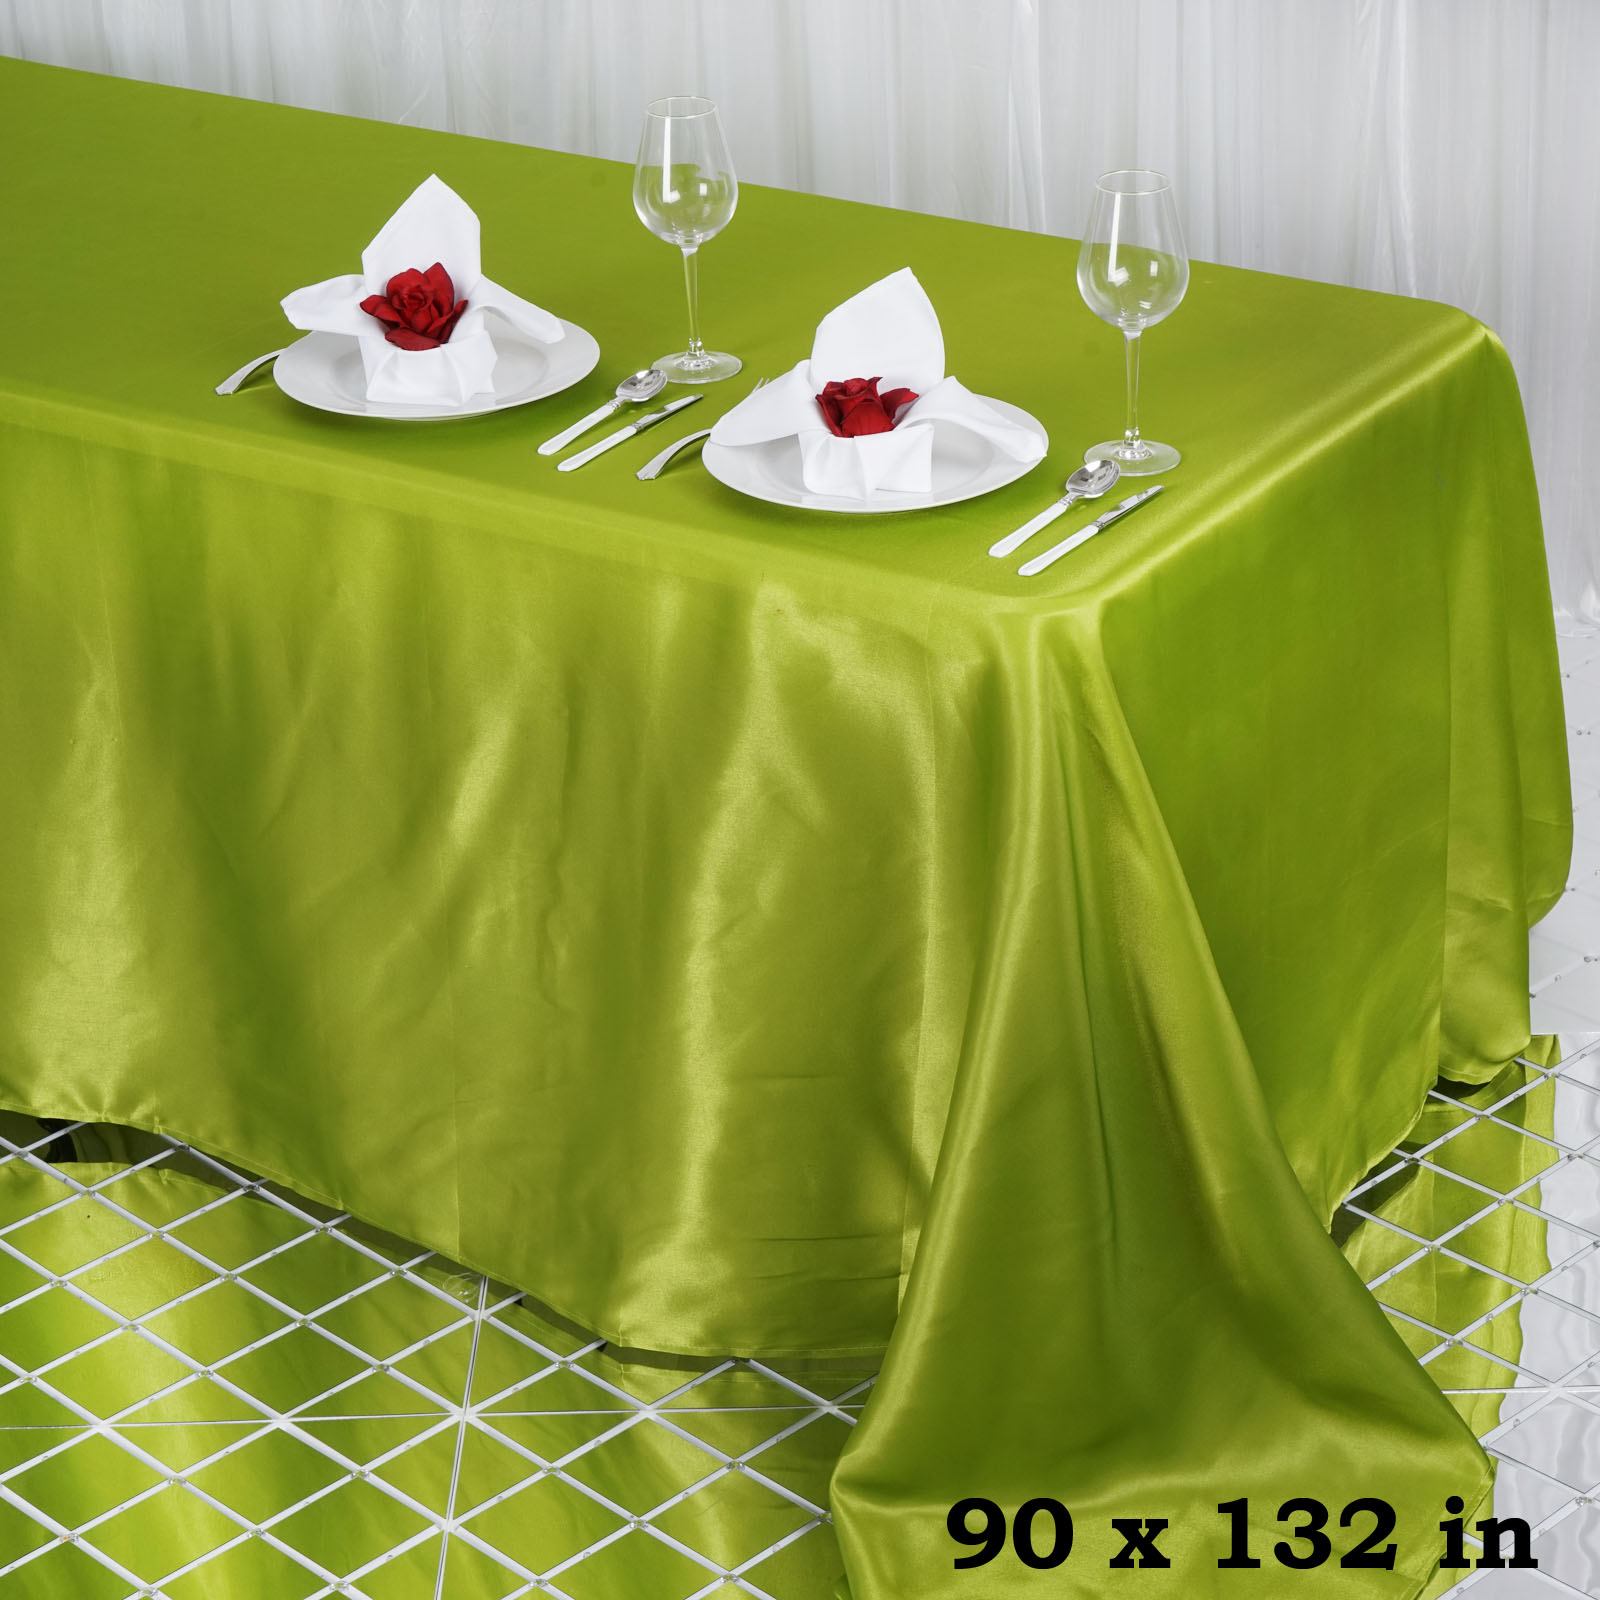 "BalsaCircle 90"" x 132"" Rectangular Satin Tablecloth Table Covers for Party Wedding Reception Catering Dining Home Table Linens"